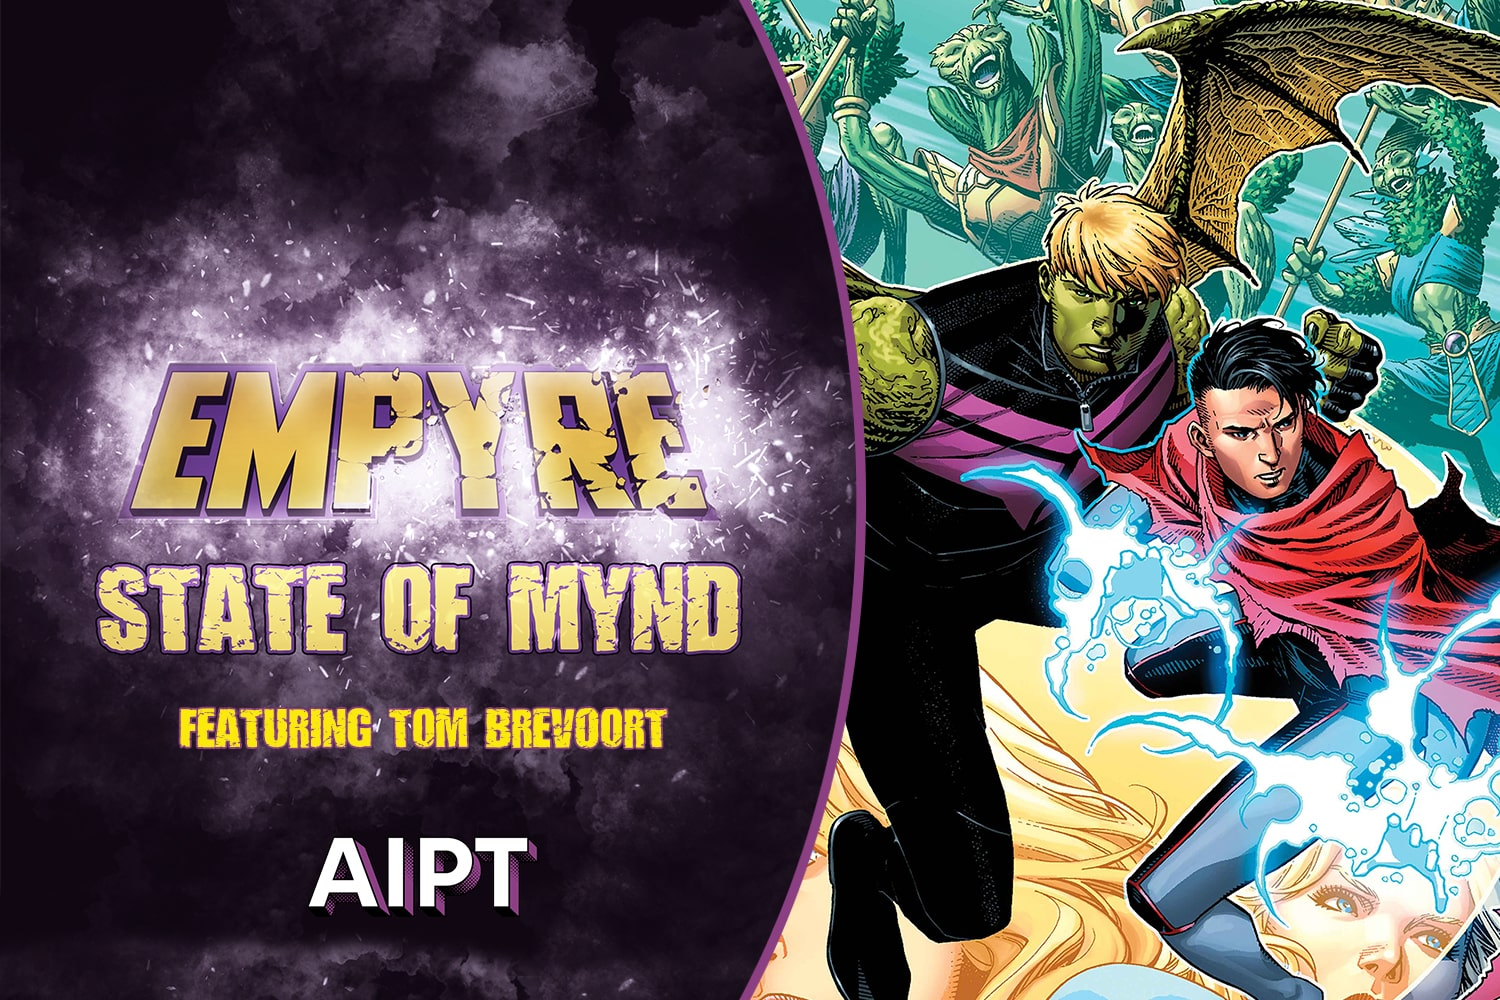 It takes a certain state of mind to comprehend the work, artistic integrity, and sheer willpower to create a comic book event, especially one as massive as the cosmos-spanning Empyre. Building an event with multiple tie-ins -- a veritable EMPIRE of comics -- requires a special kind of skill, tact, and organization. Where is Captain Marvel?, is Swordsman still sword..ing?, What's a Groot? All reasons why we're excited to peel back the curtain and see what Tom Brevoort has to say about the development of the numerous stories spilling into and out of Empyre starting April 15th in this, the second-ever EMPYRE STATE OF MYND!